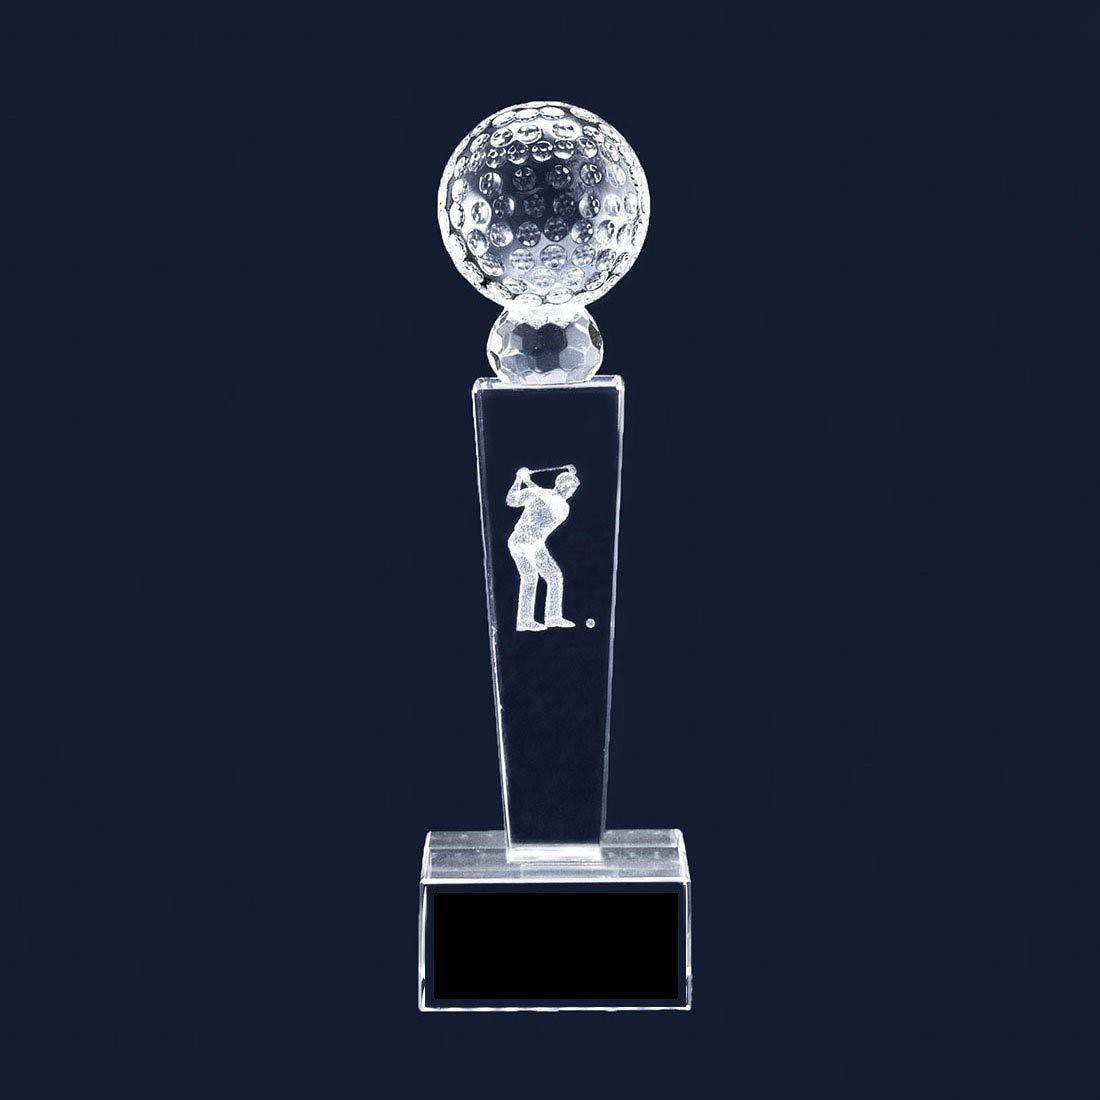 Amazon.com : Crystal Golf Ball Tower Trophy with Male Hologram | 10